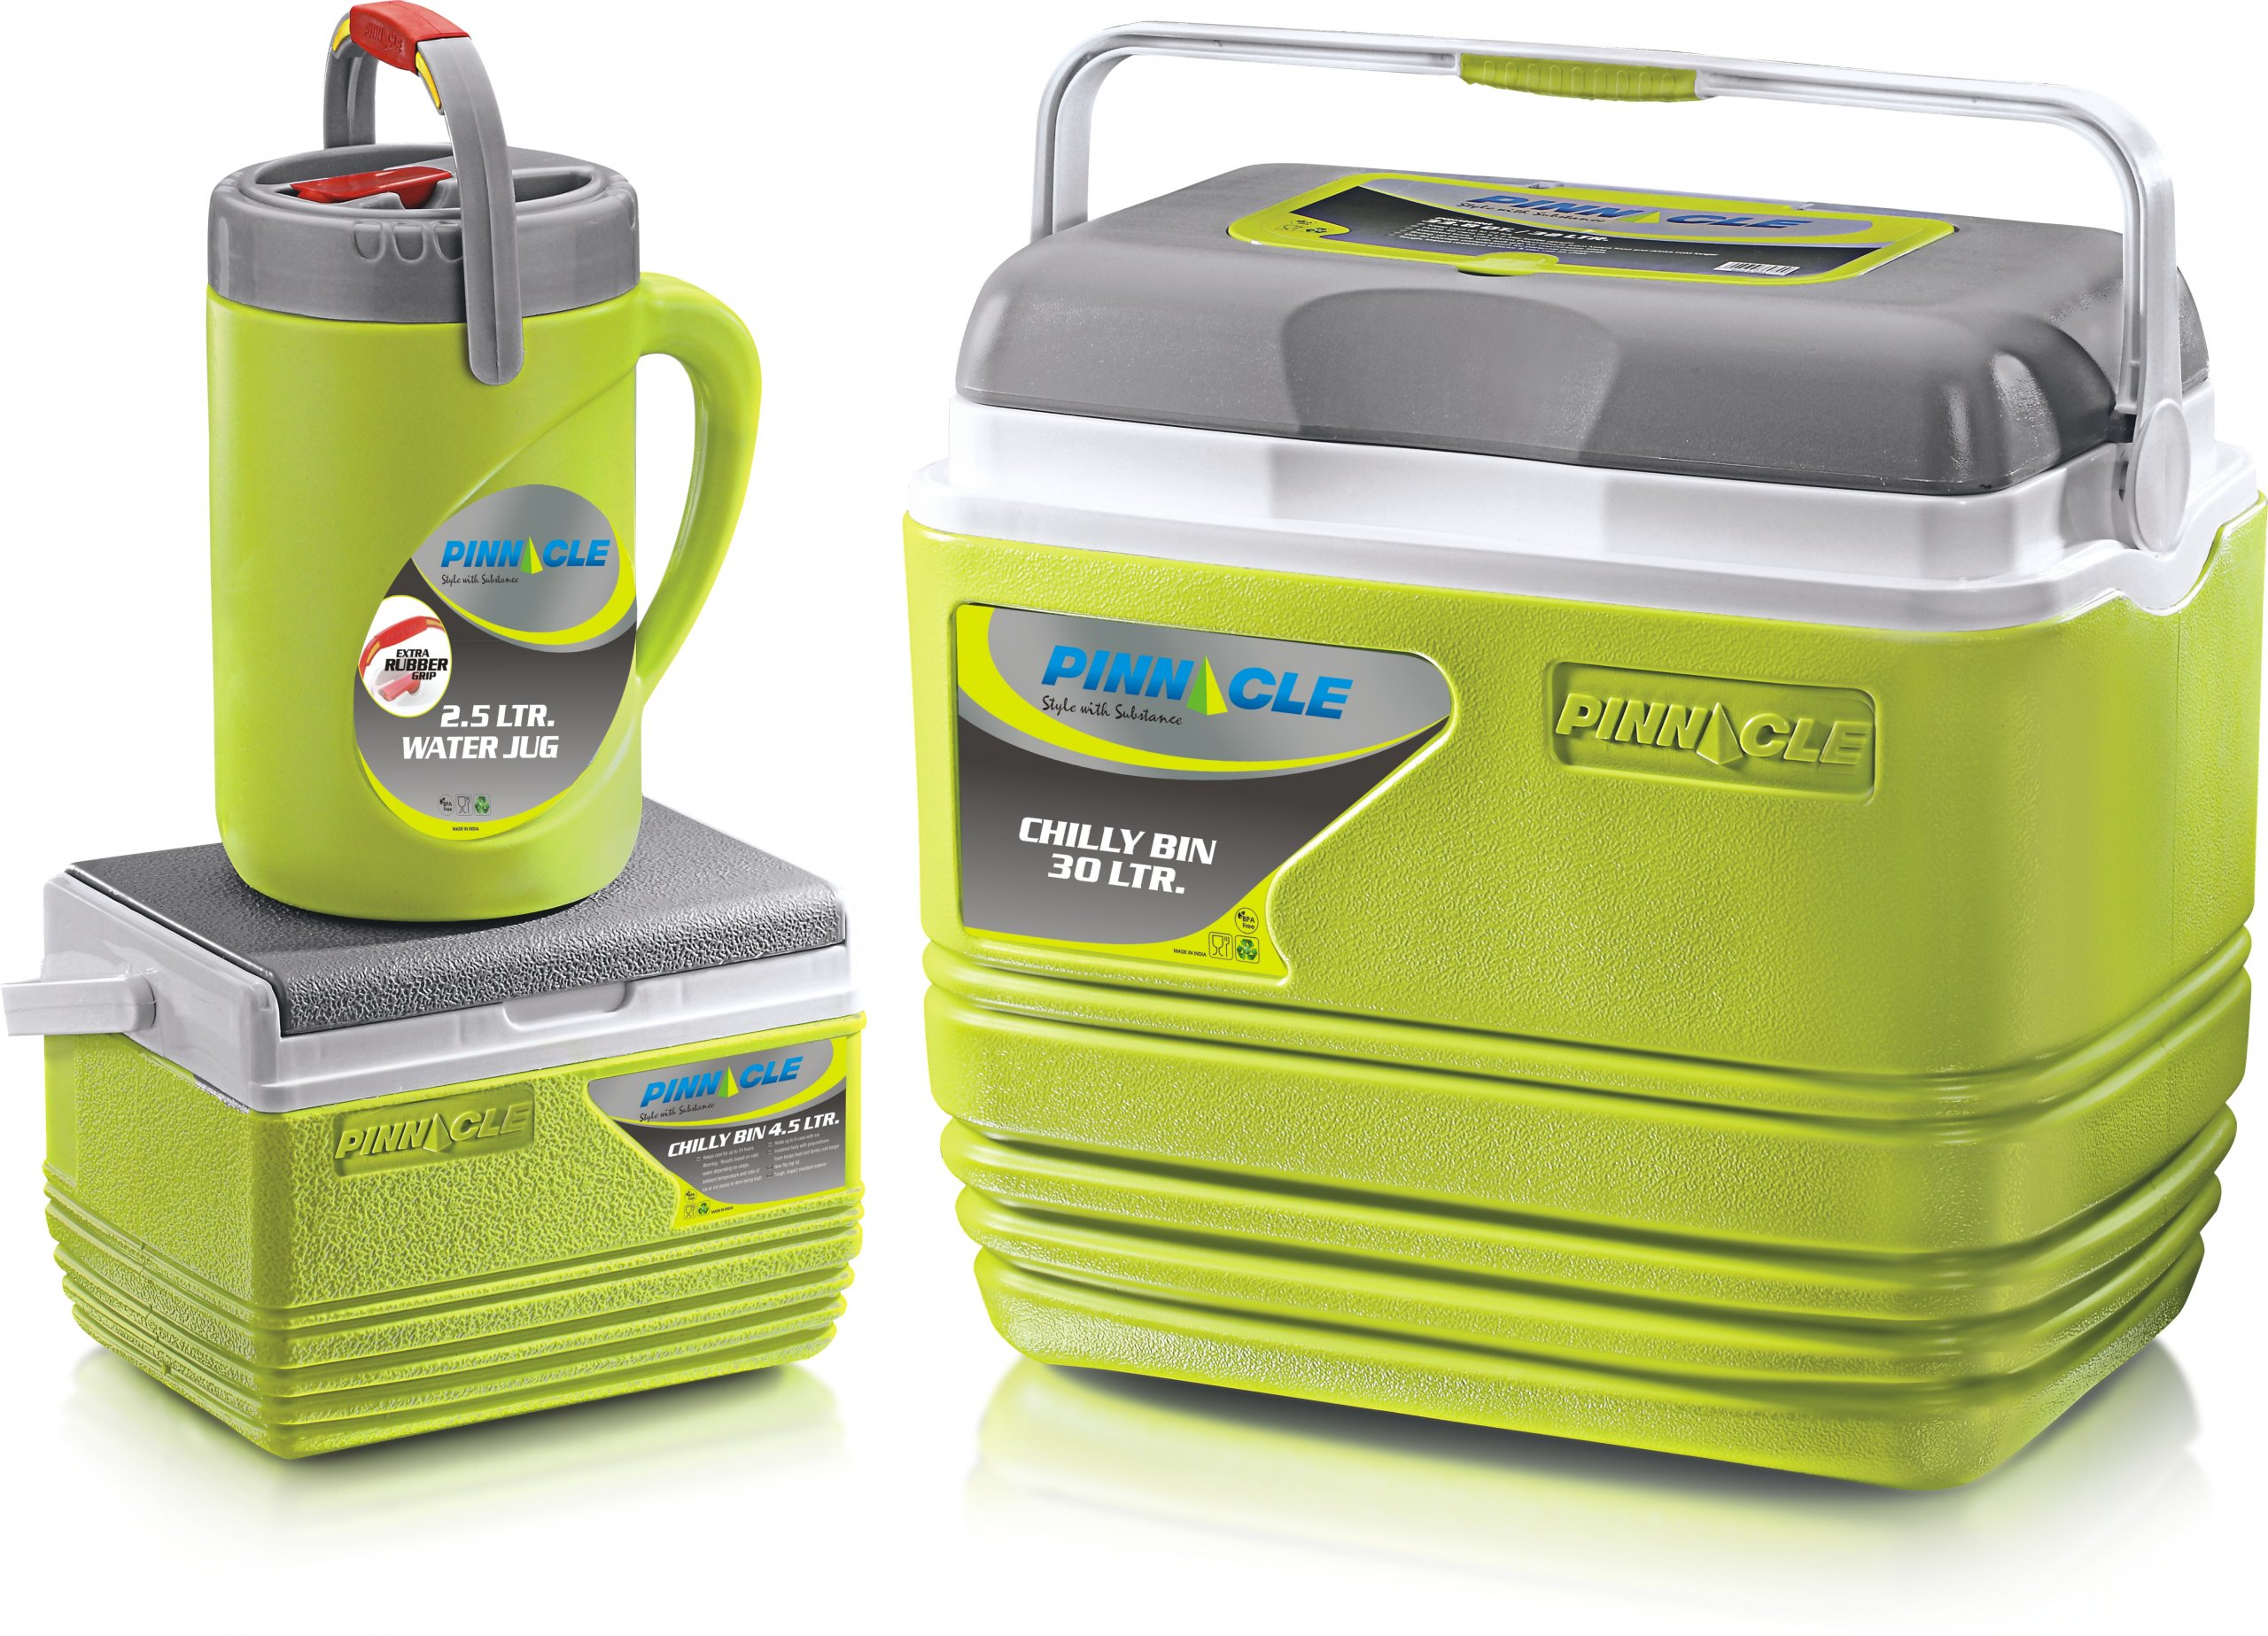 Set of 3 green chilly bins / coolers from the Haunui range